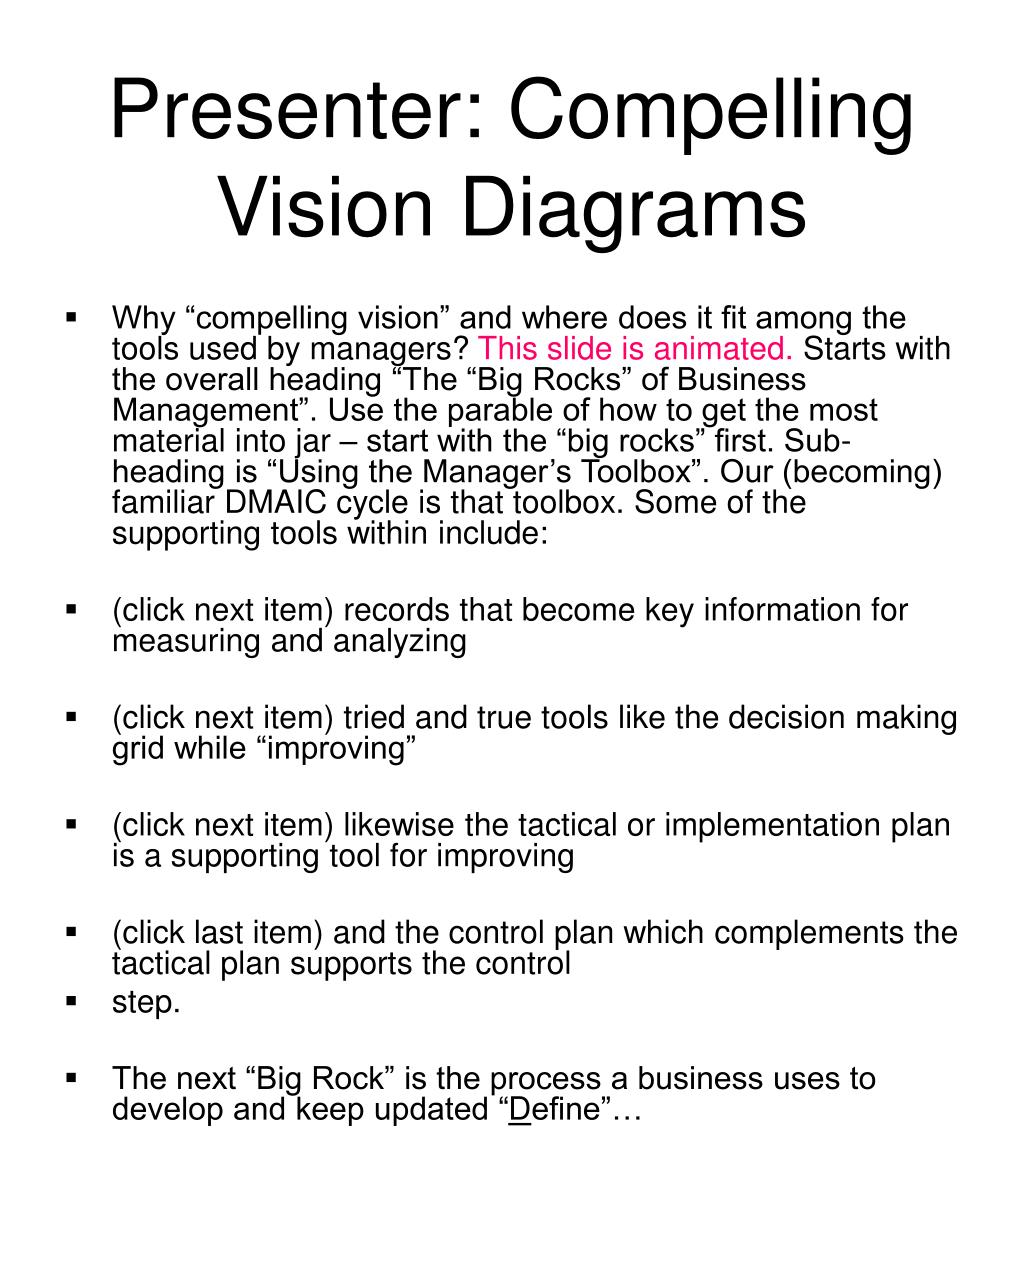 """Why """"compelling vision"""" and where does it fit among the tools used by managers?"""